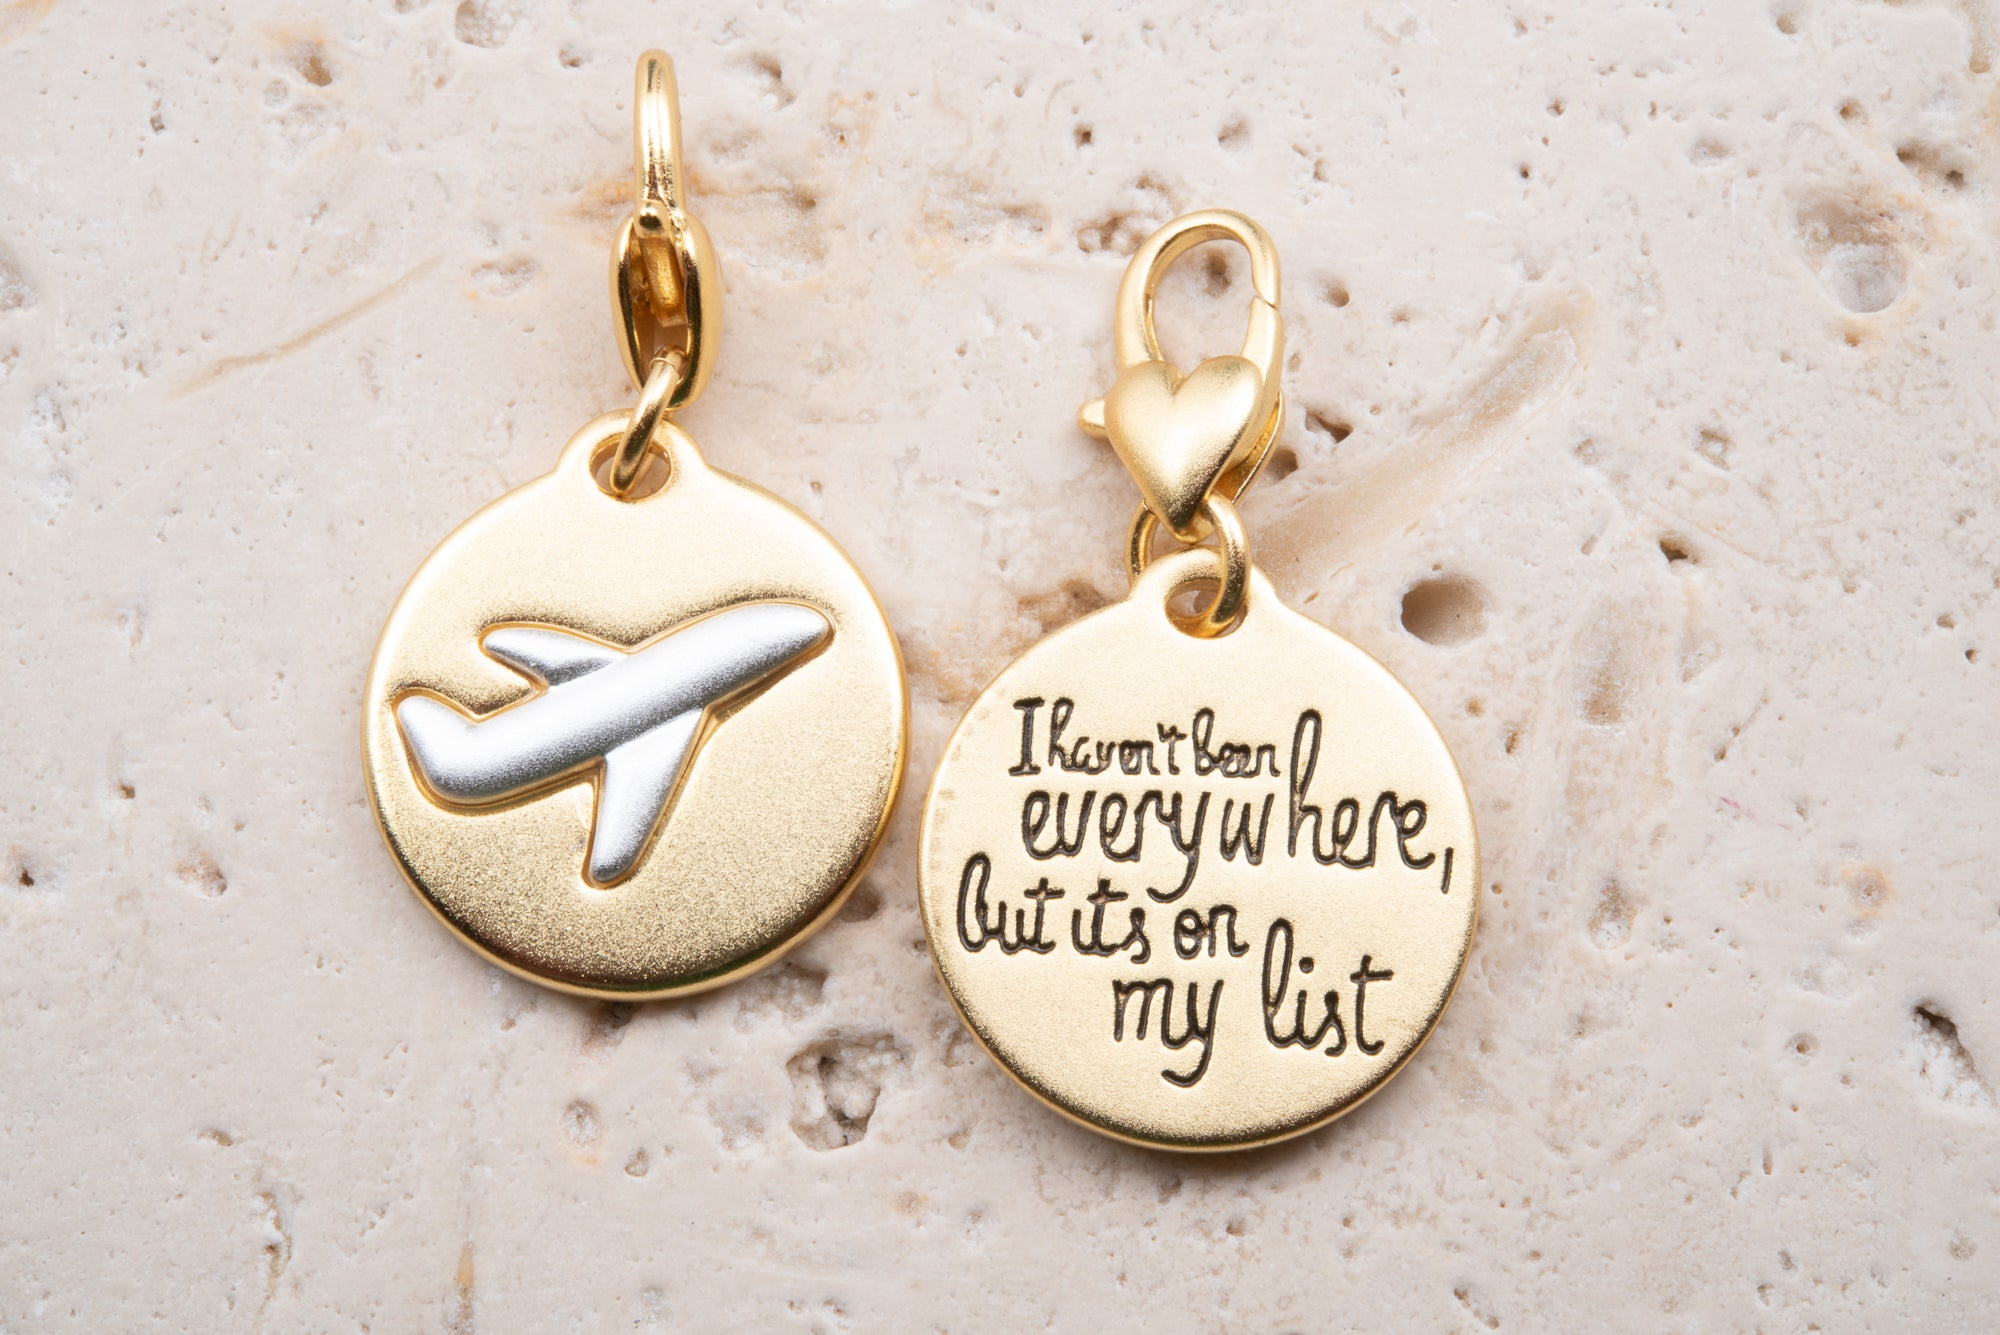 Heartfelt Emotions Gold 2-Tone Medallion - Airplane